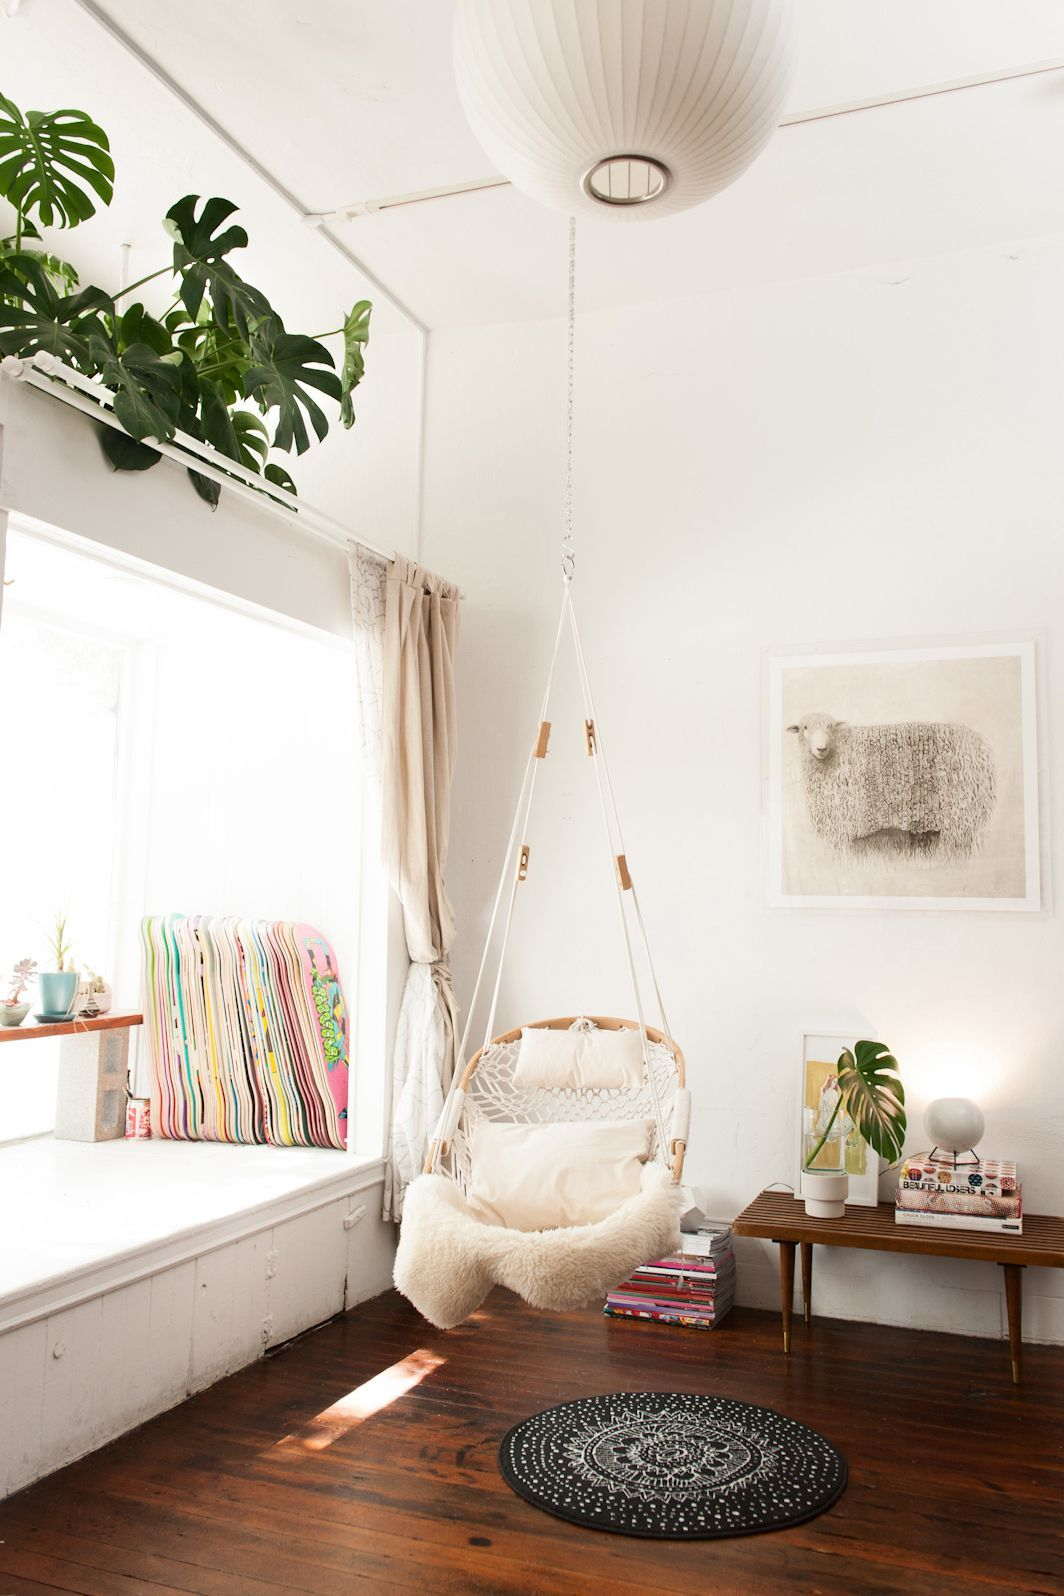 Decorate Your Home BETTER With These Pro Tips | Hängesessel, Wohnen ...